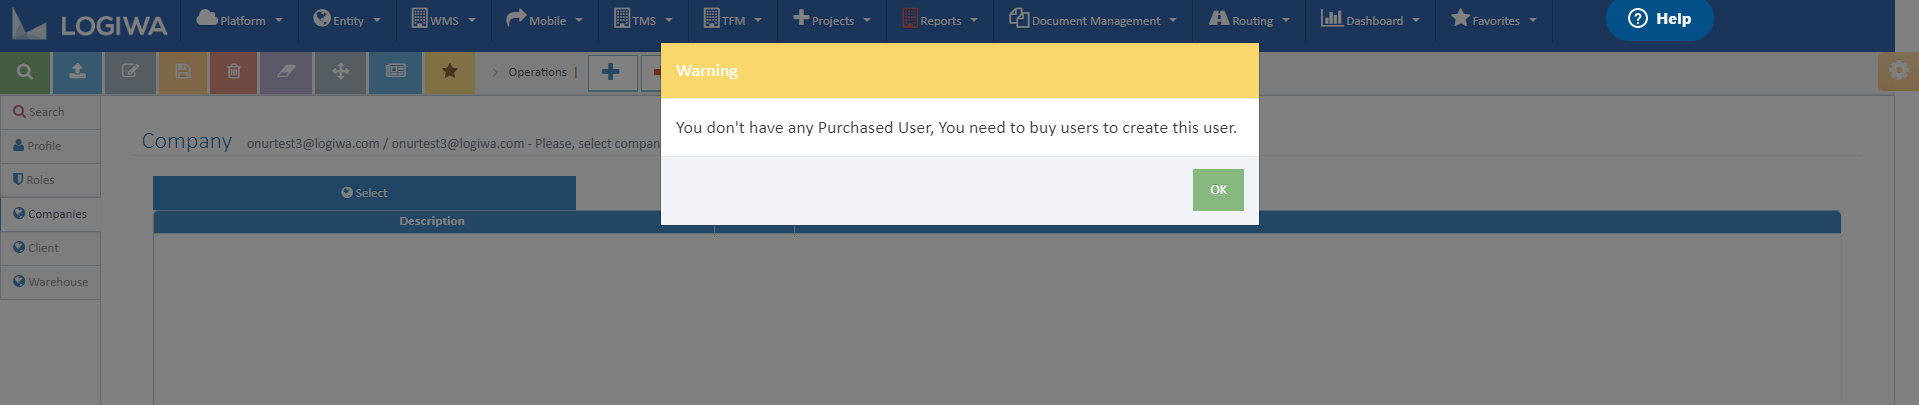 You_don_t_have_any_Purchased_User__You_need_to_buy_users_to_create_this_user..png